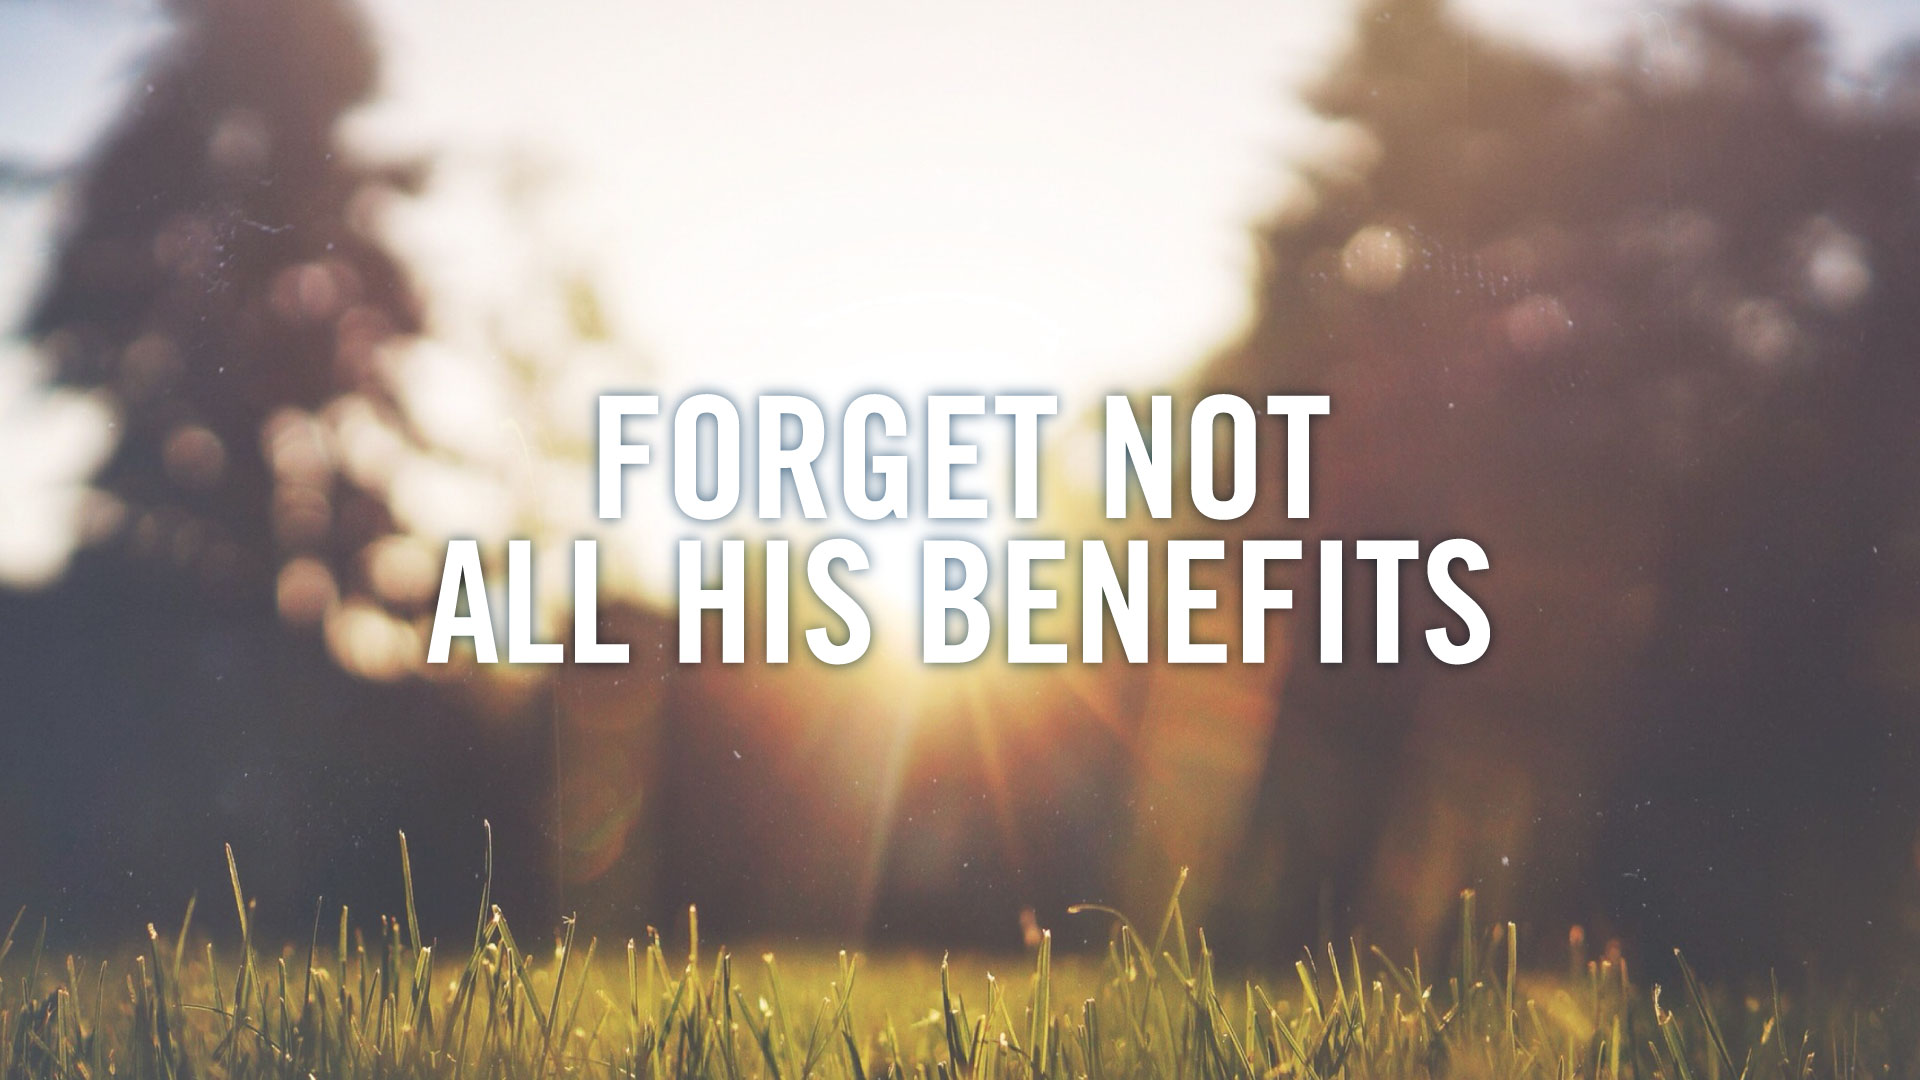 Forget-Not-All-His-Benefits_Theme_Pastor-Steve-McCartt-Family-Worship-Center-Florence_web